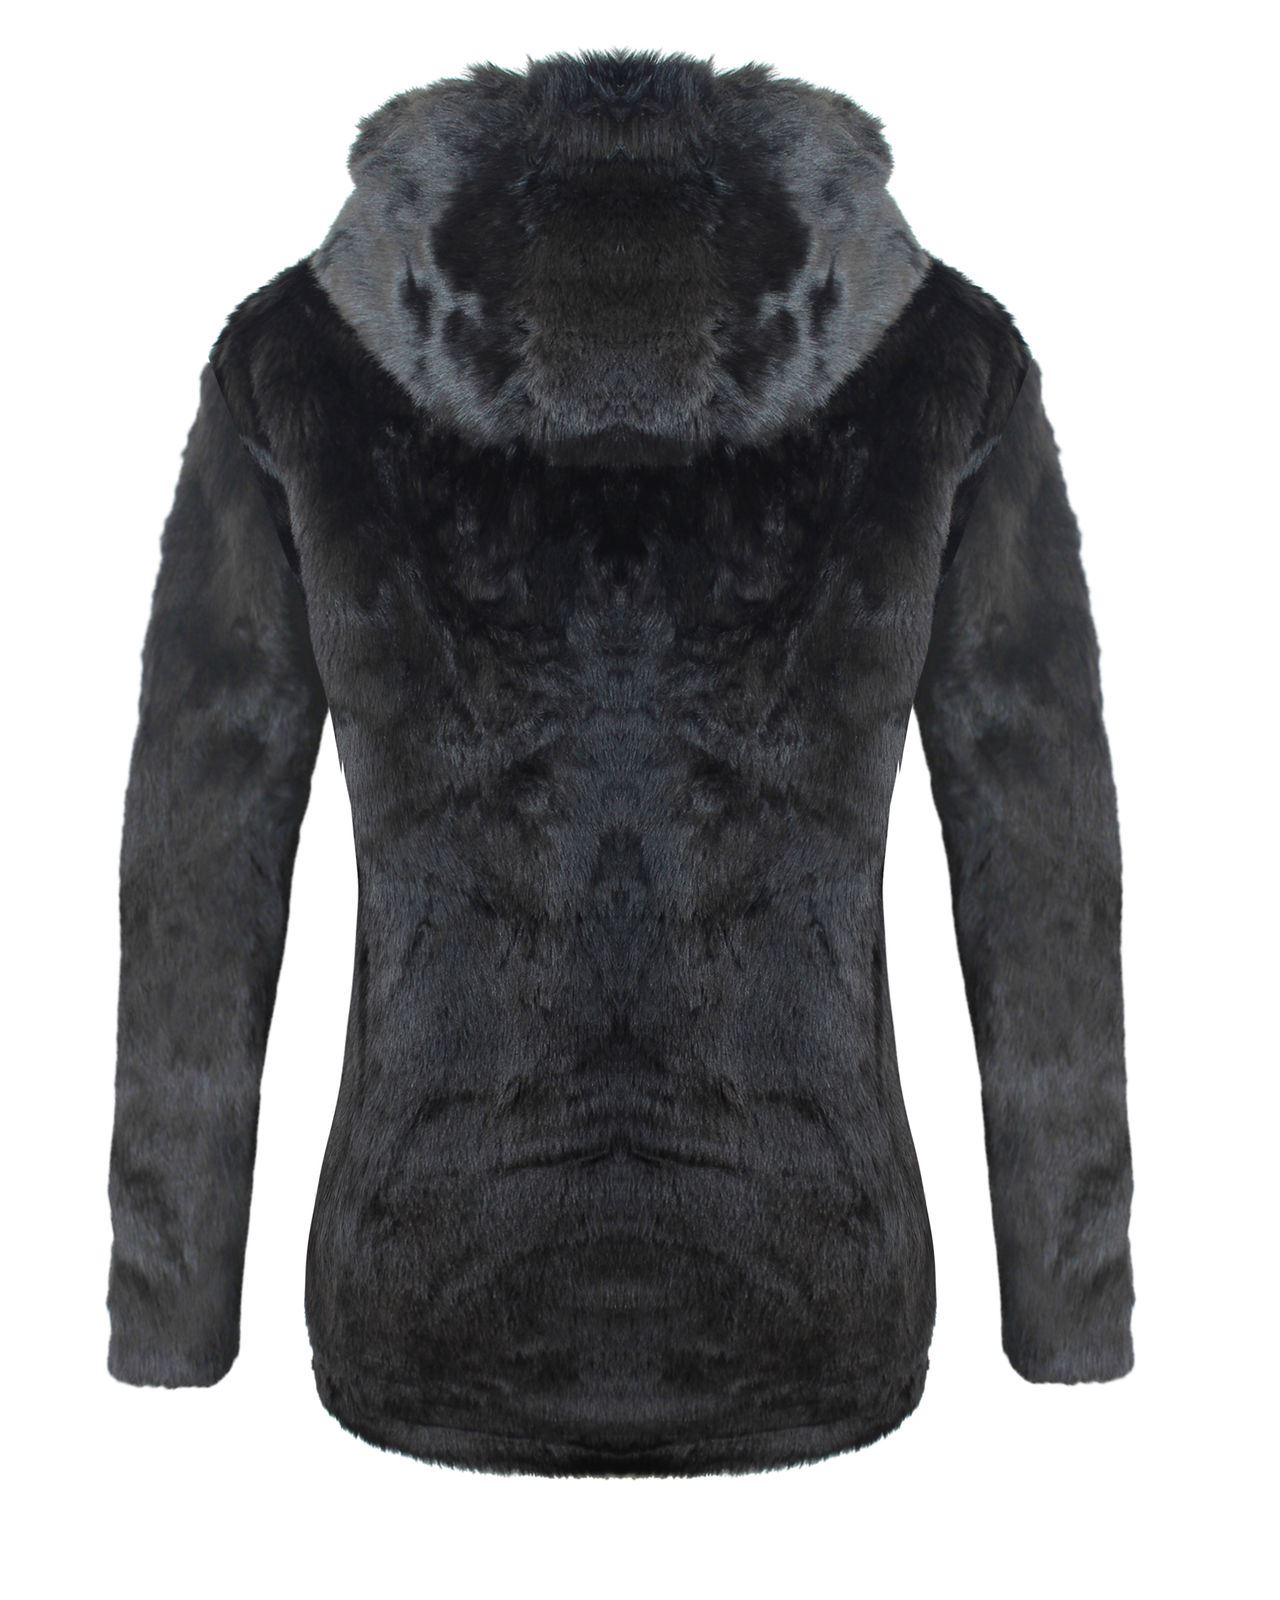 LADIES WOMENS ALL OVER FAUX FUR HOODED JACKET WINTER WARM